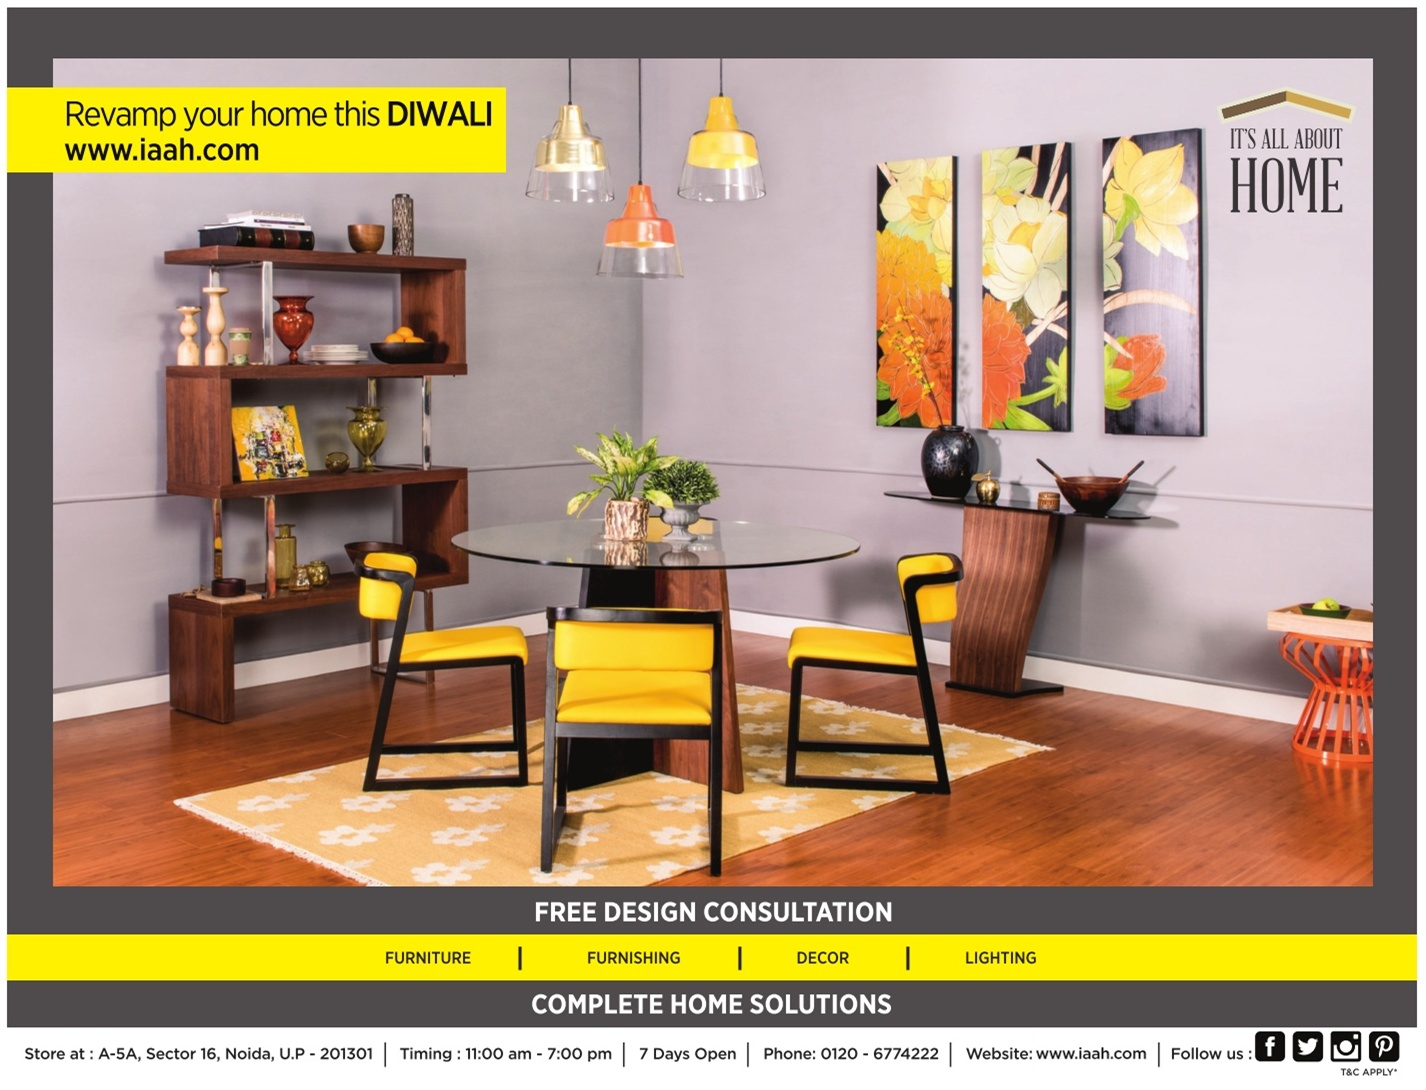 Iaah furniture decor its all about home ad advert gallery for All home decor furniture